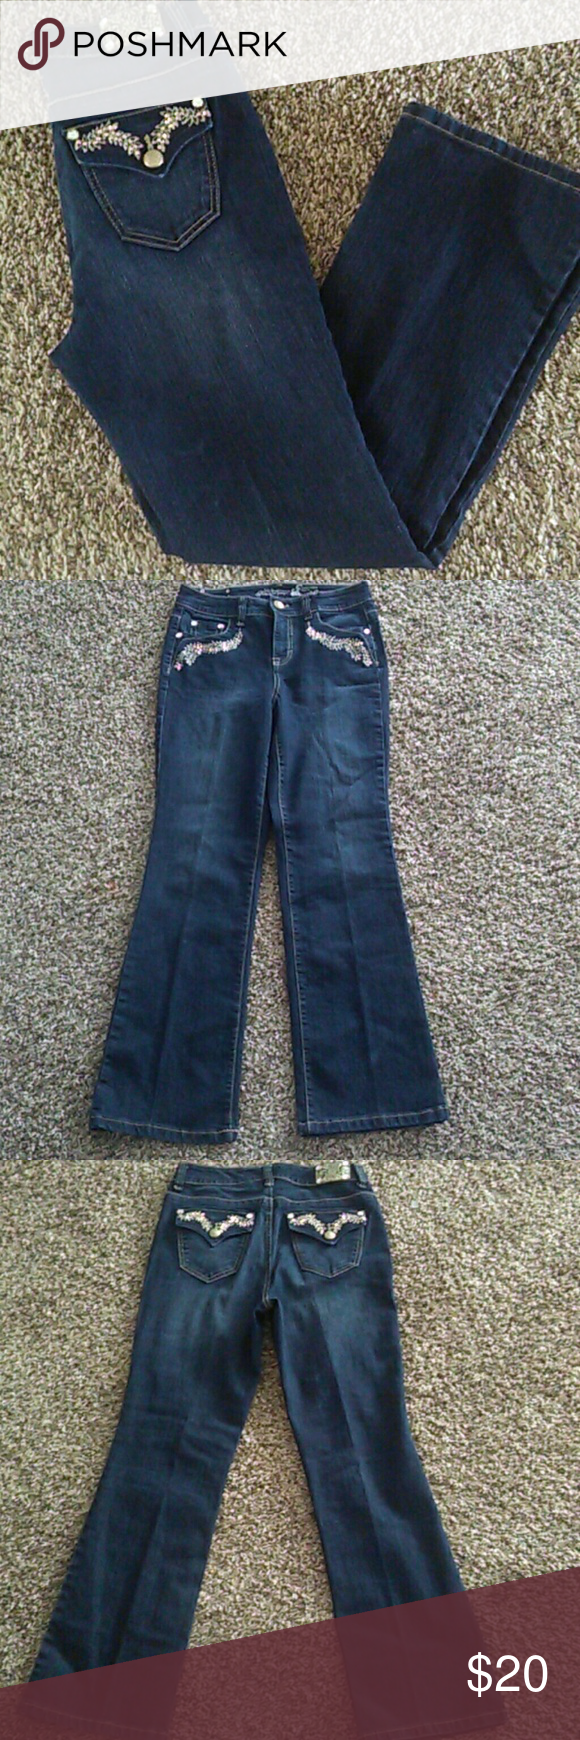 Gorgeous Jeans Good condition. Size 8P. Tummy control bootcut. Inseam 28in. Waist 28in Style & Co Jeans Boot Cut